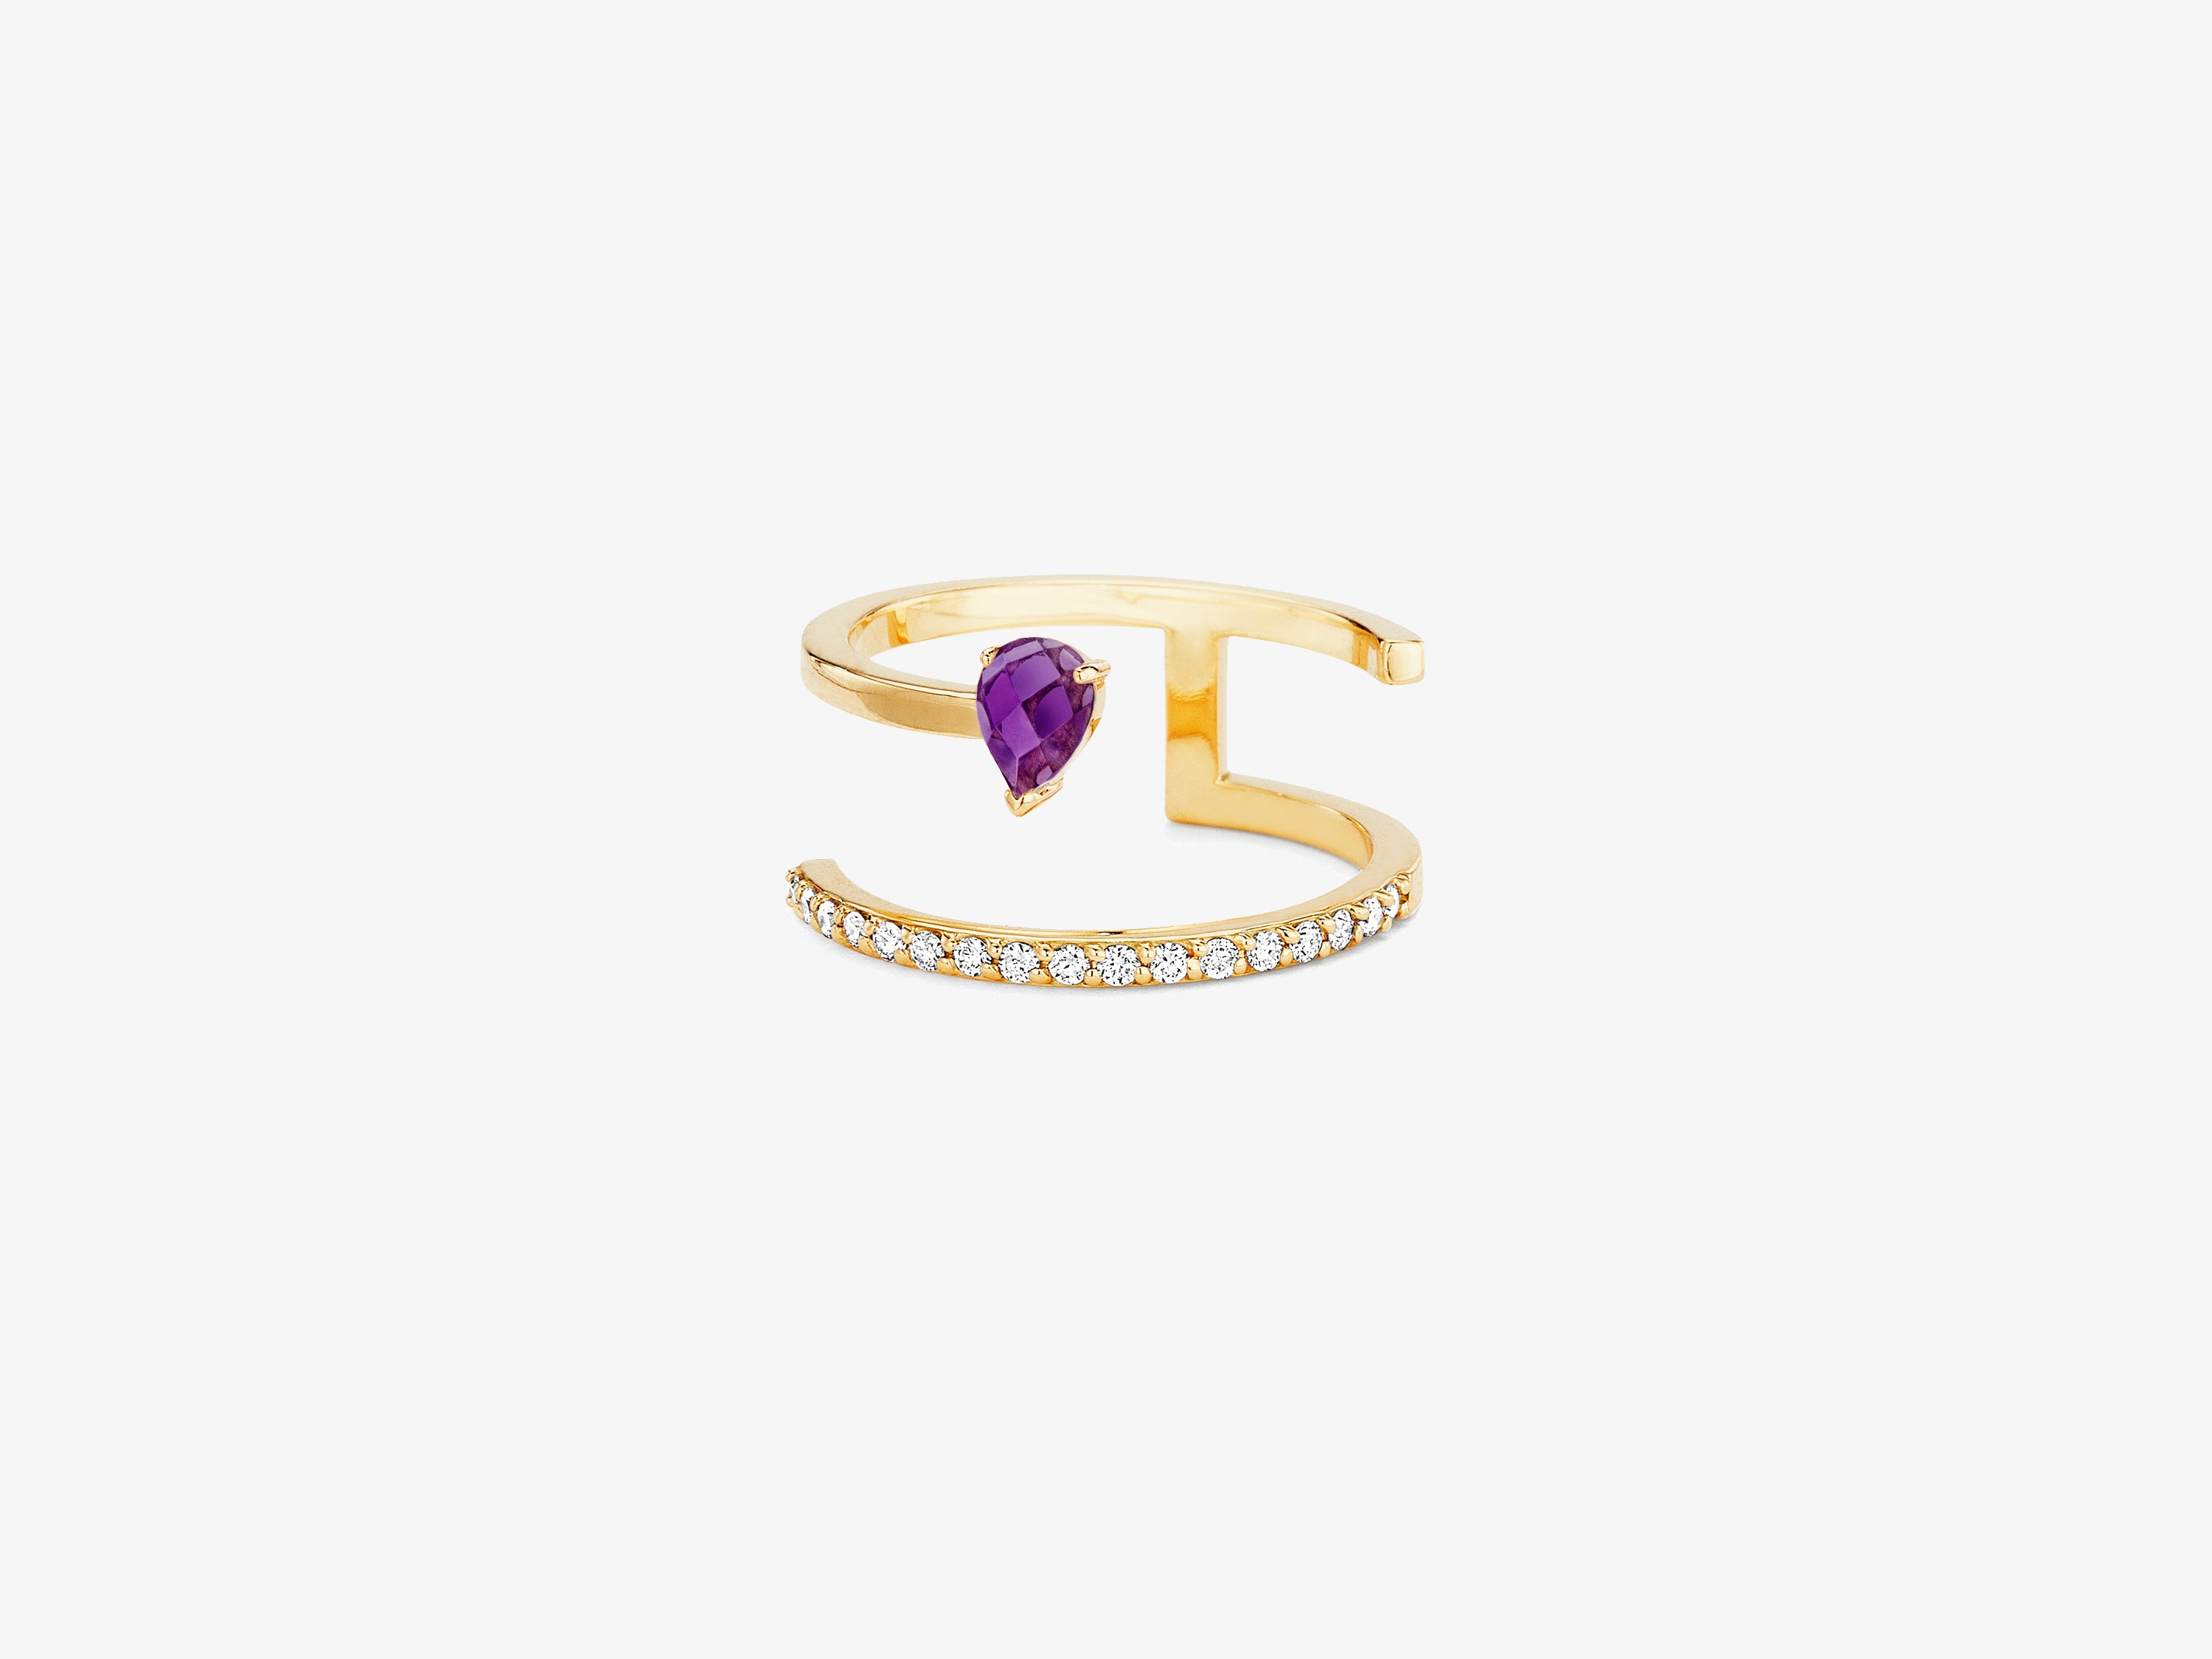 Asymmetrical Two Row Ring with Diamond Pave and Rose Cut Stone Detail